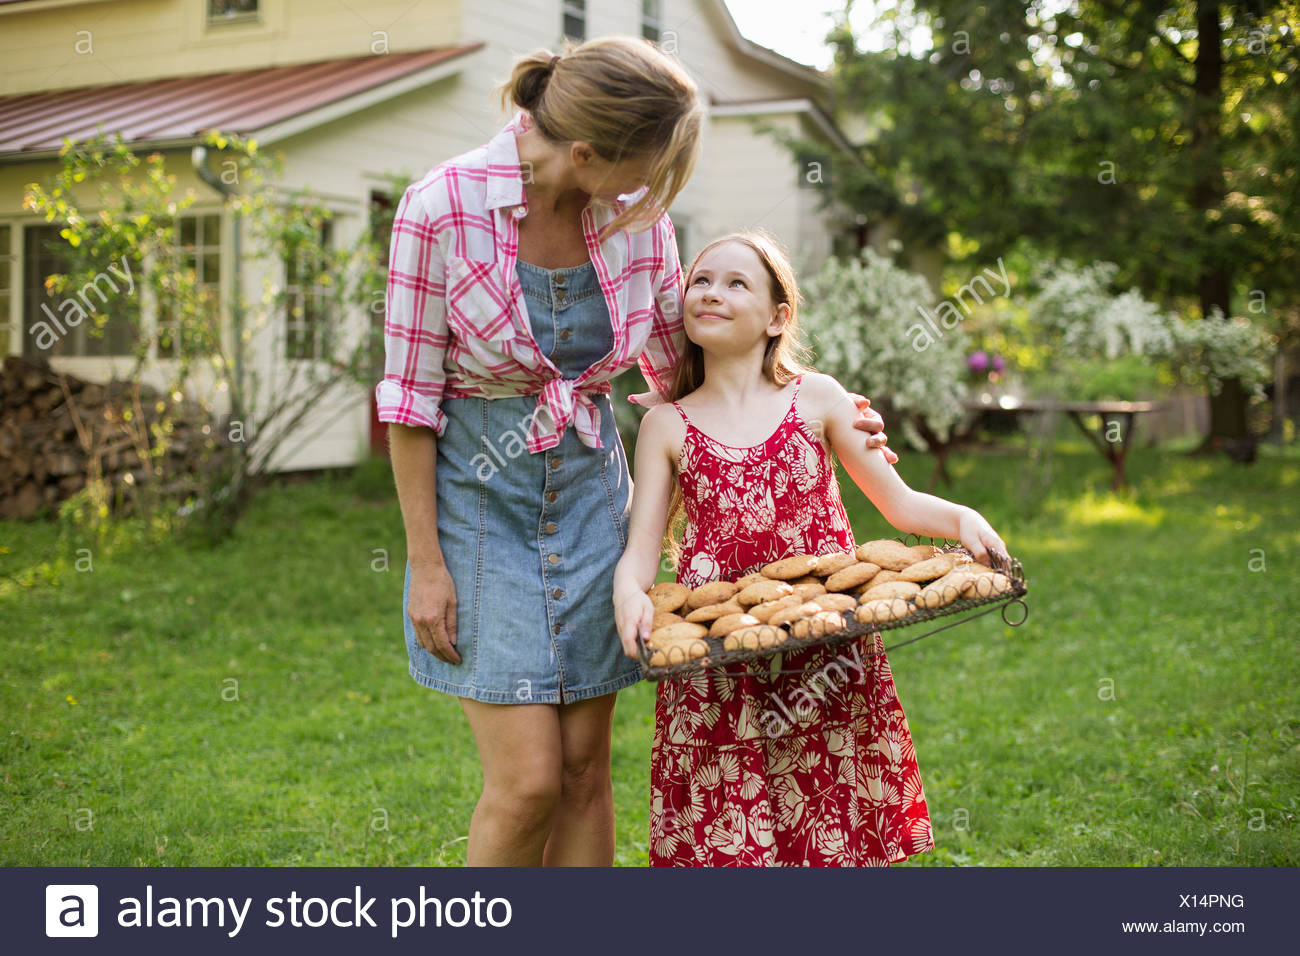 Baking homemade cookies. A young girl holding a tray of fresh baked cookies, and an adult woman leaning down to praise her. - Stock Image